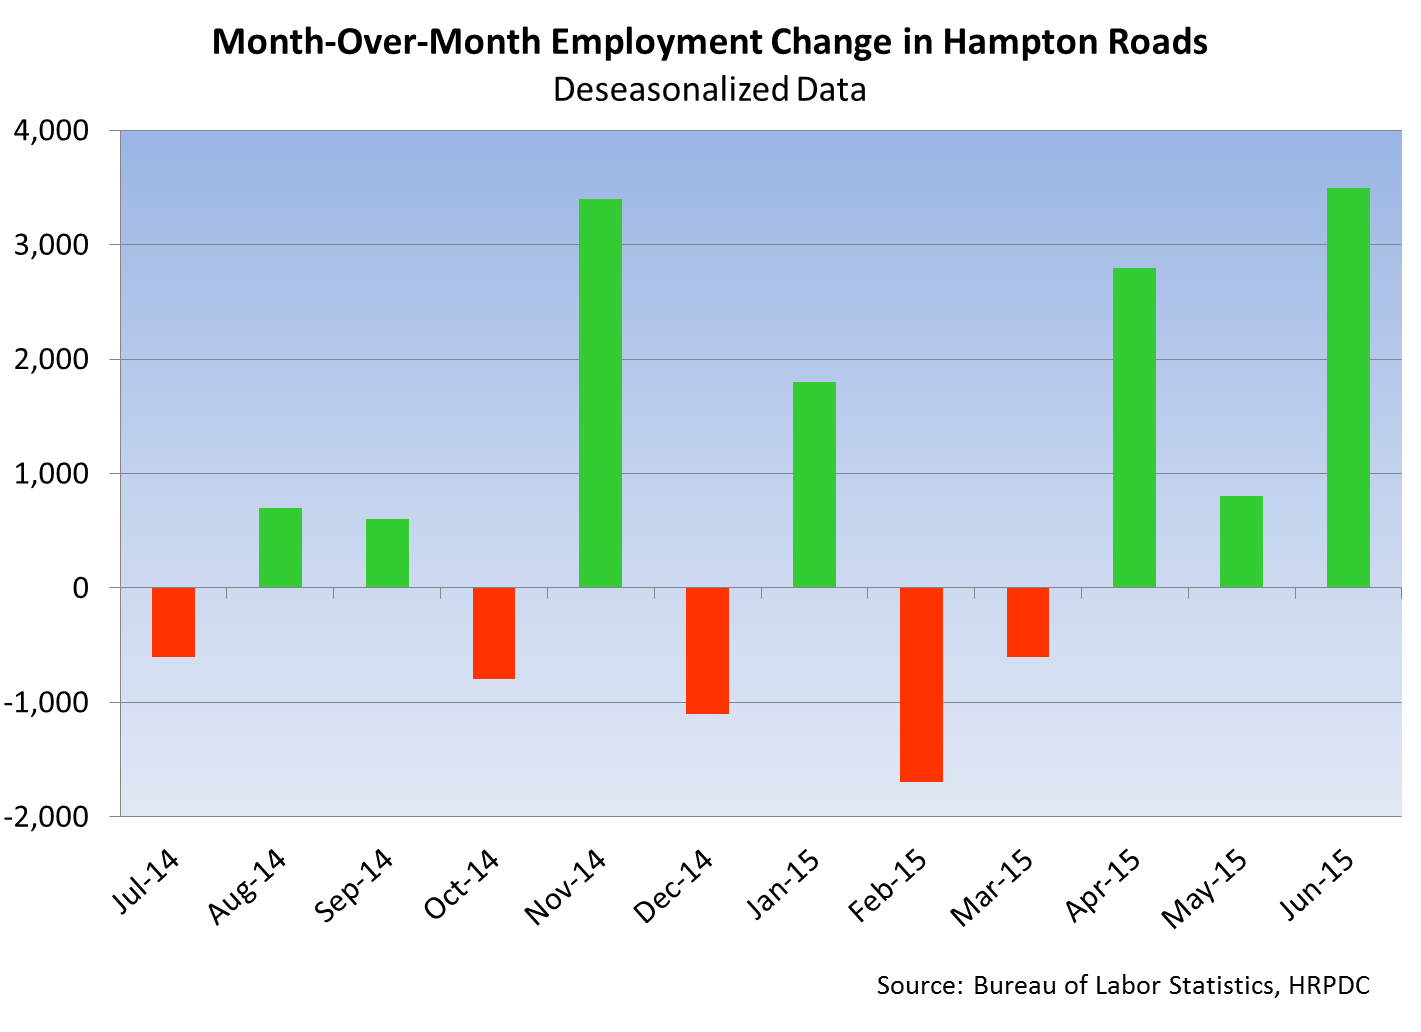 Month-Over-Month Employment Change in Hampton Roads